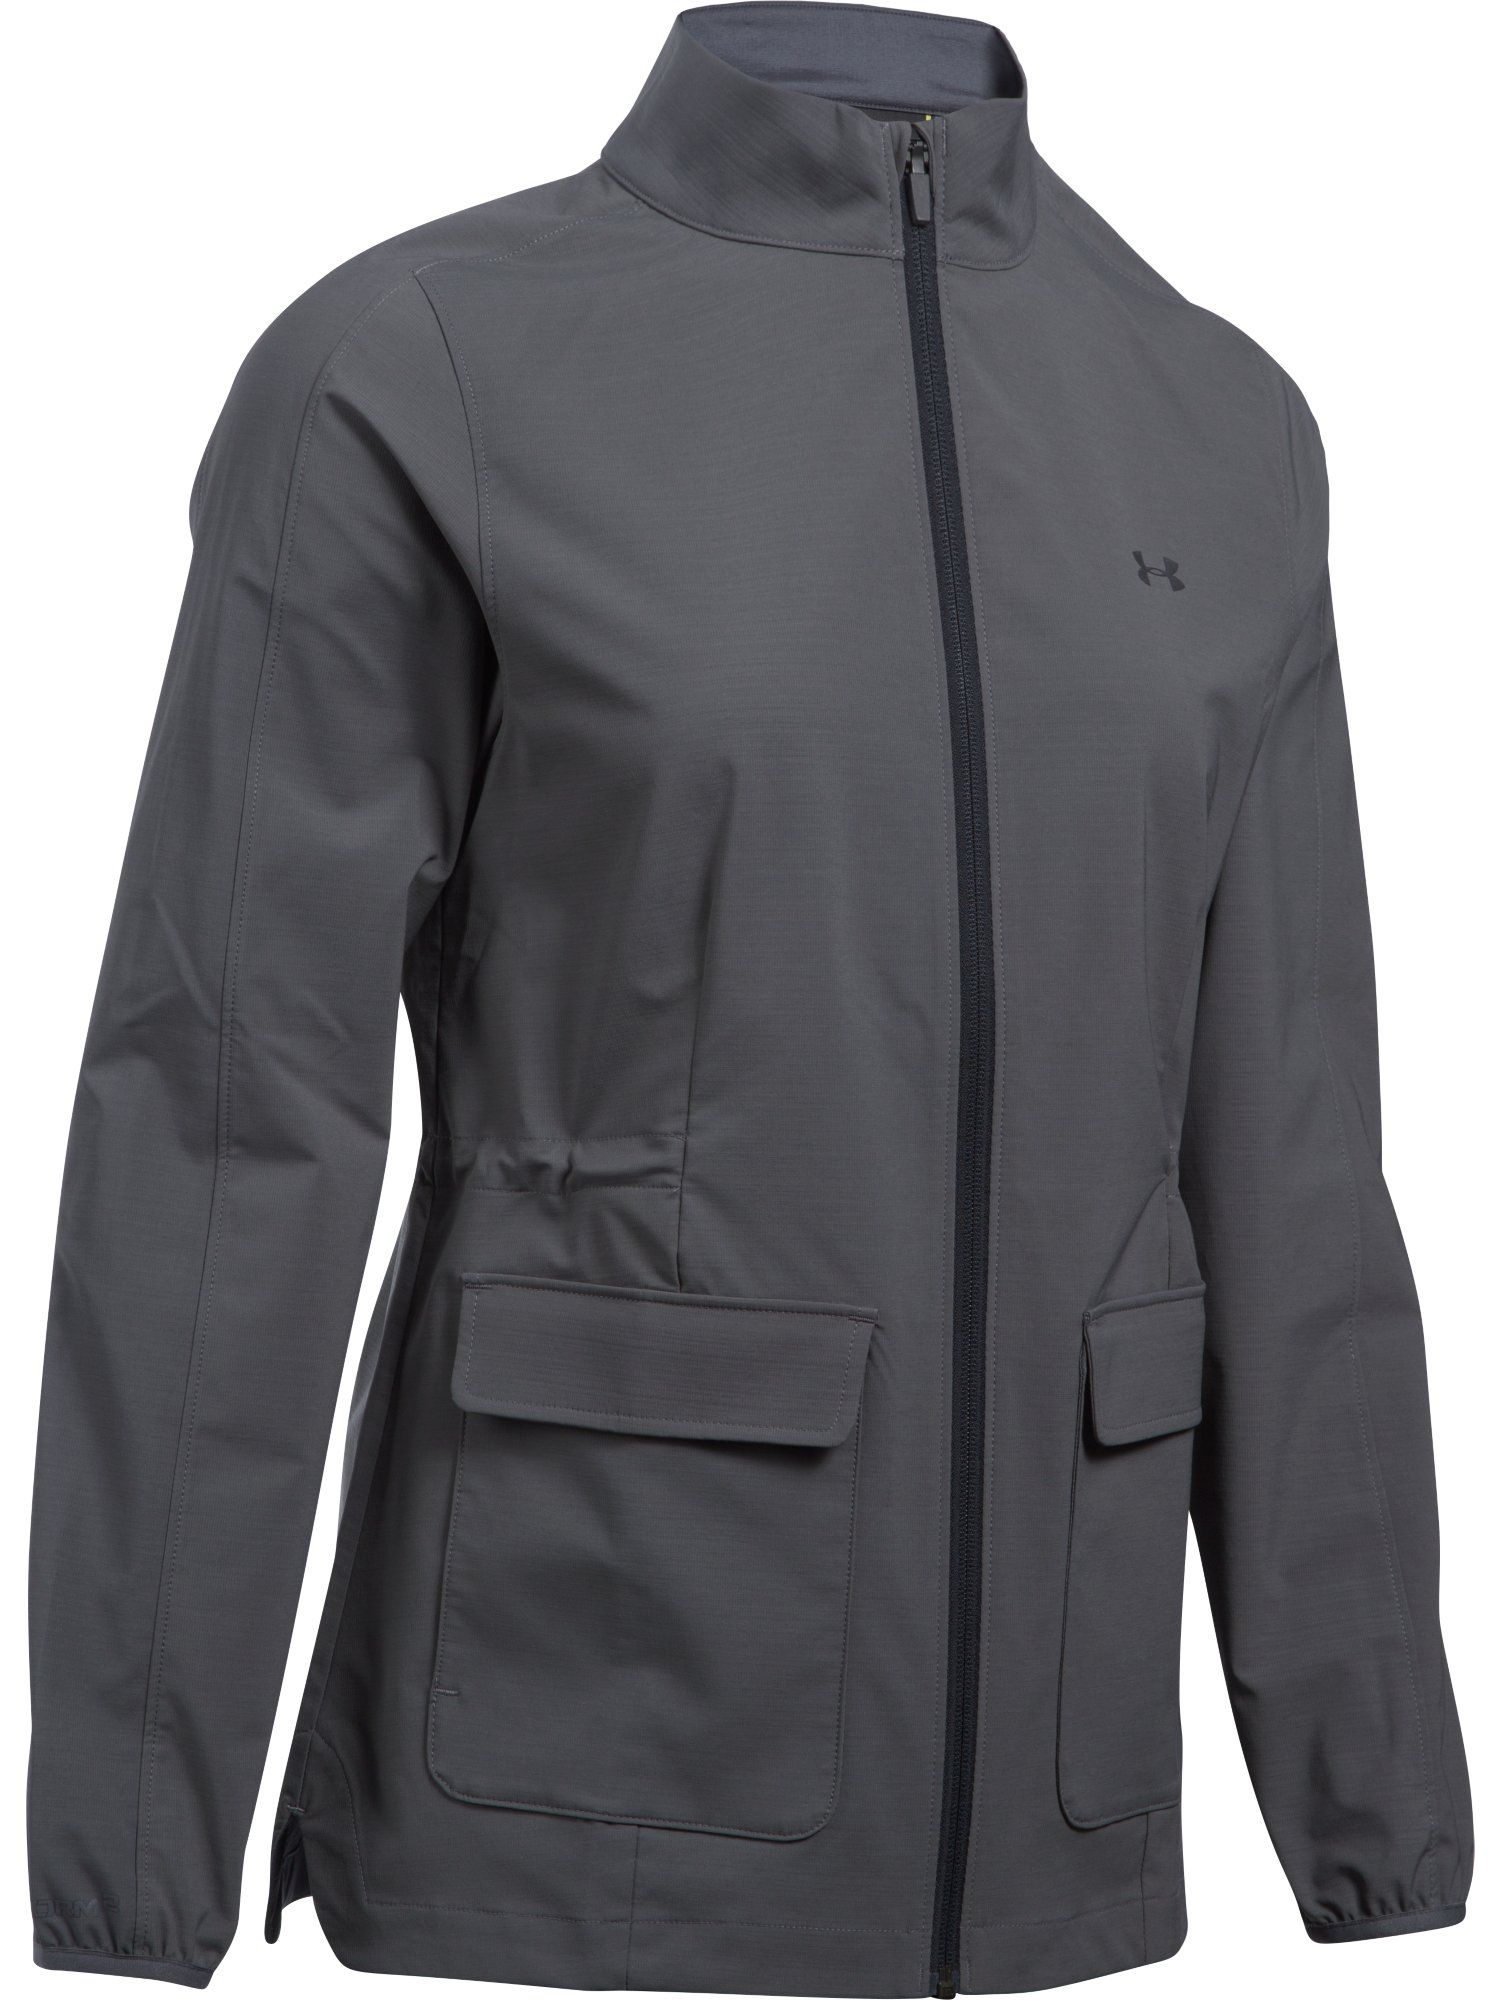 Under Armour Storm Windstrike Full Zip Jacket, Grey